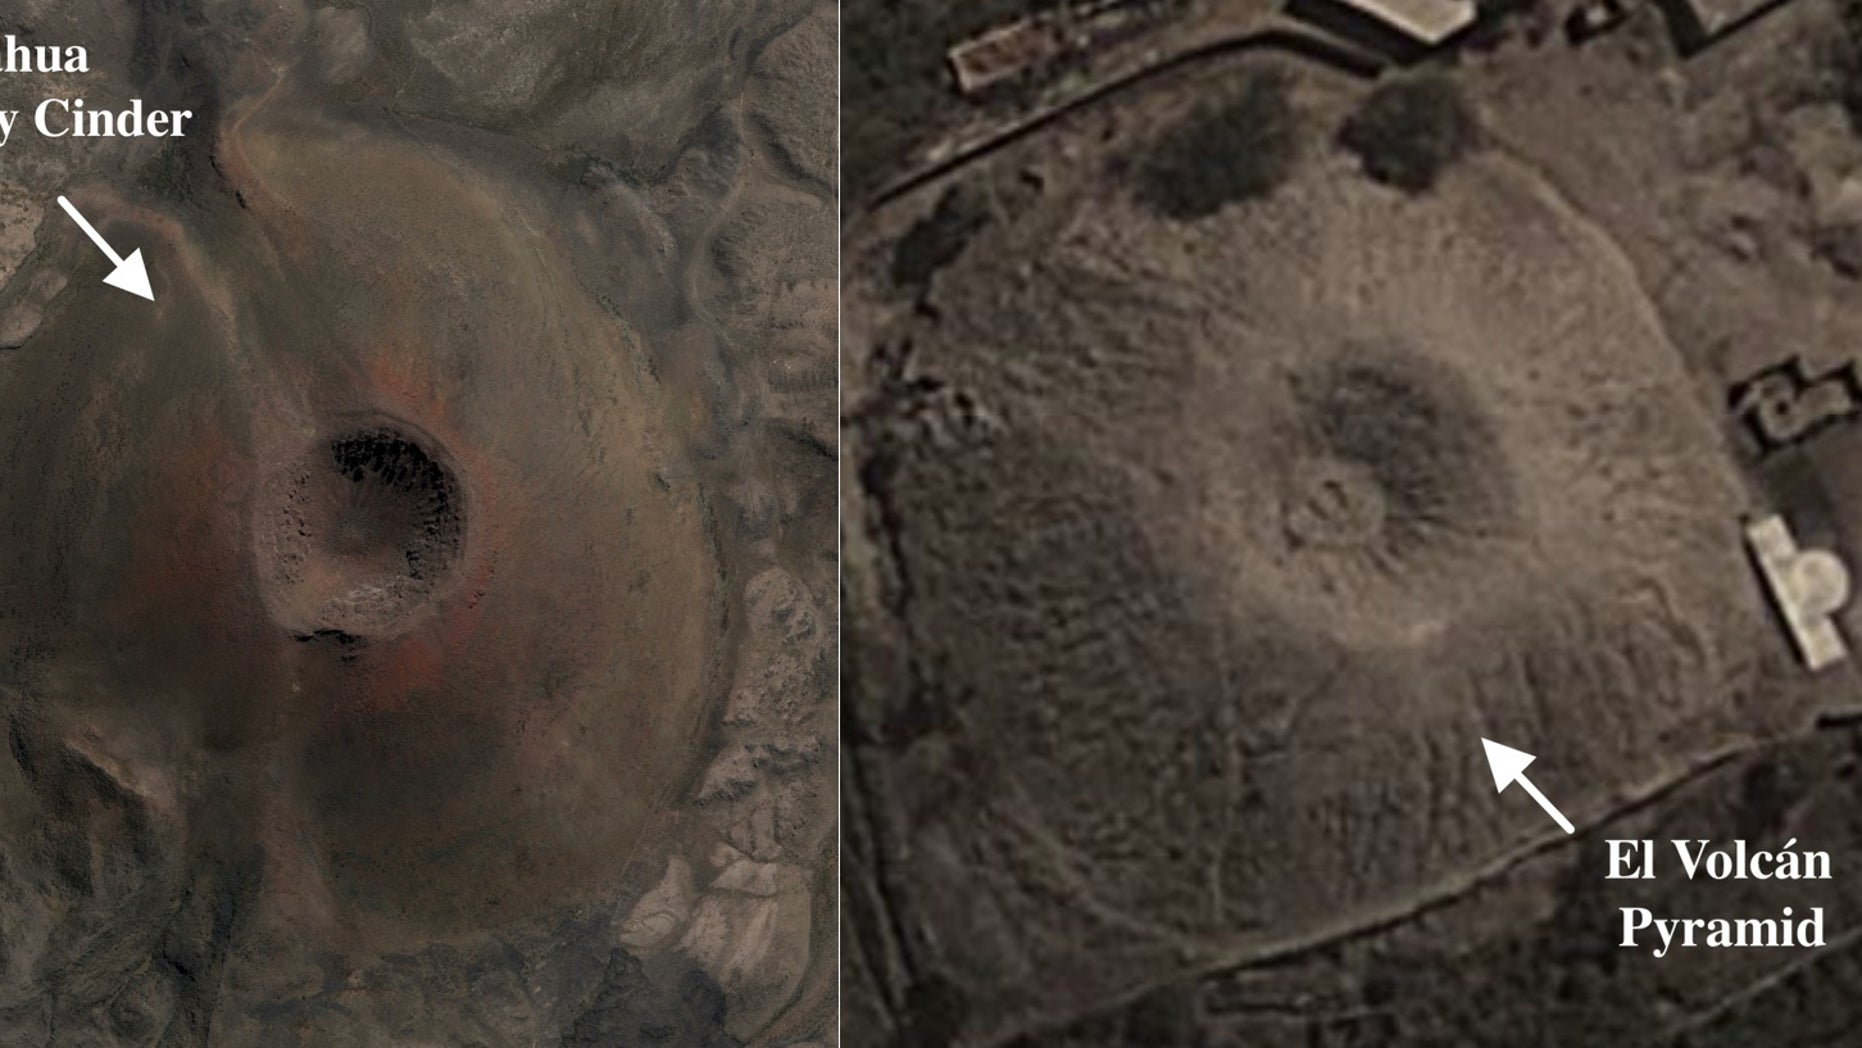 El Volcán in the Nepeña Valley of coastal Peru has archaeologists stumped as to when and why this mound was built, though it may have served as a place for a ceremony related to a total solar eclipse.